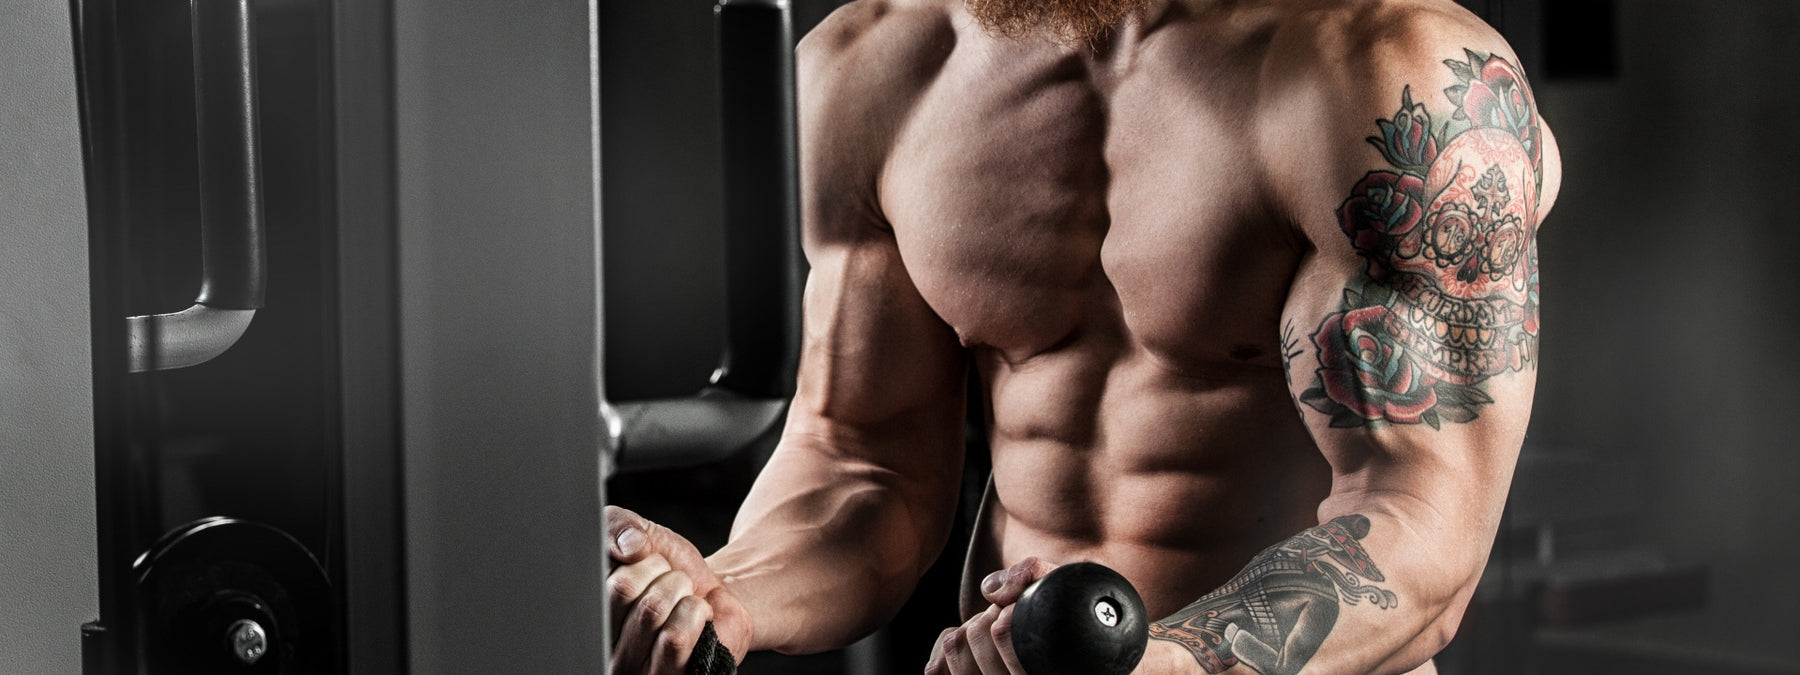 How to Stay Shredded and Strong During the Holidays